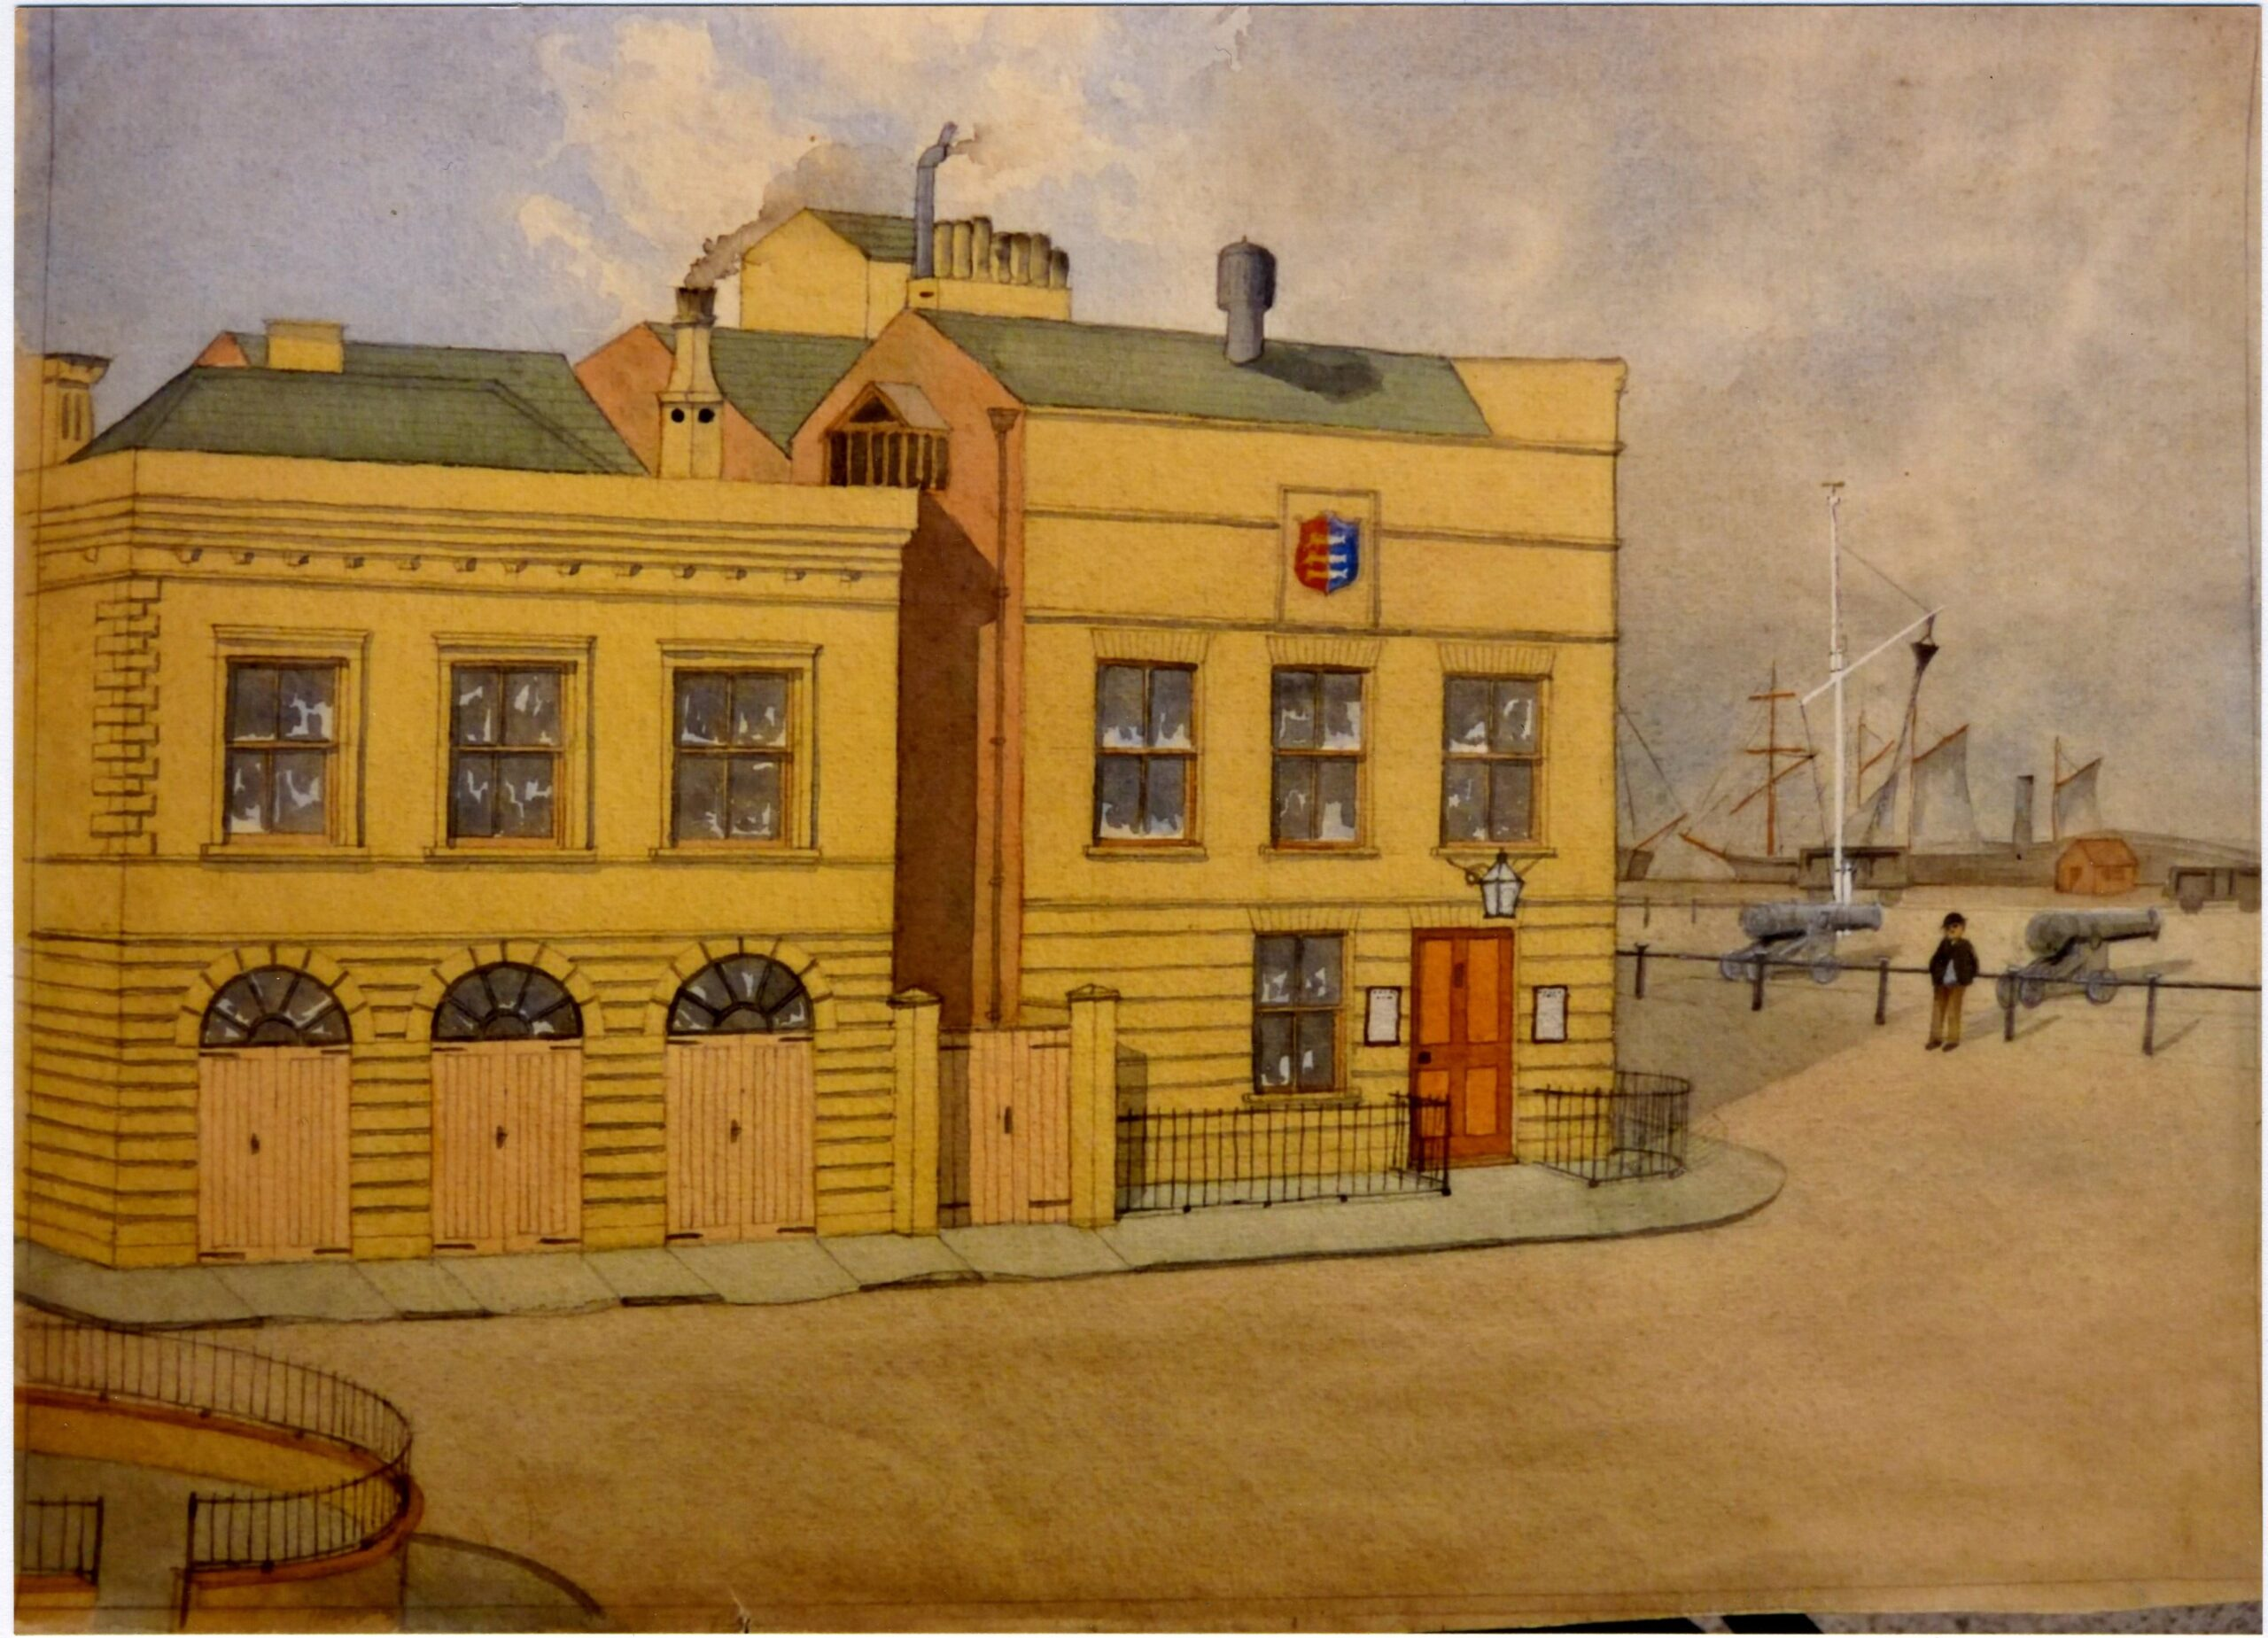 The Police Station Record Room and the Fire Engine House, east side of the Town Hall, Great Yarmouth. Built 1842. Pulled Down 1879-80. Painted in October 1942 from an original sketch taken in 1879